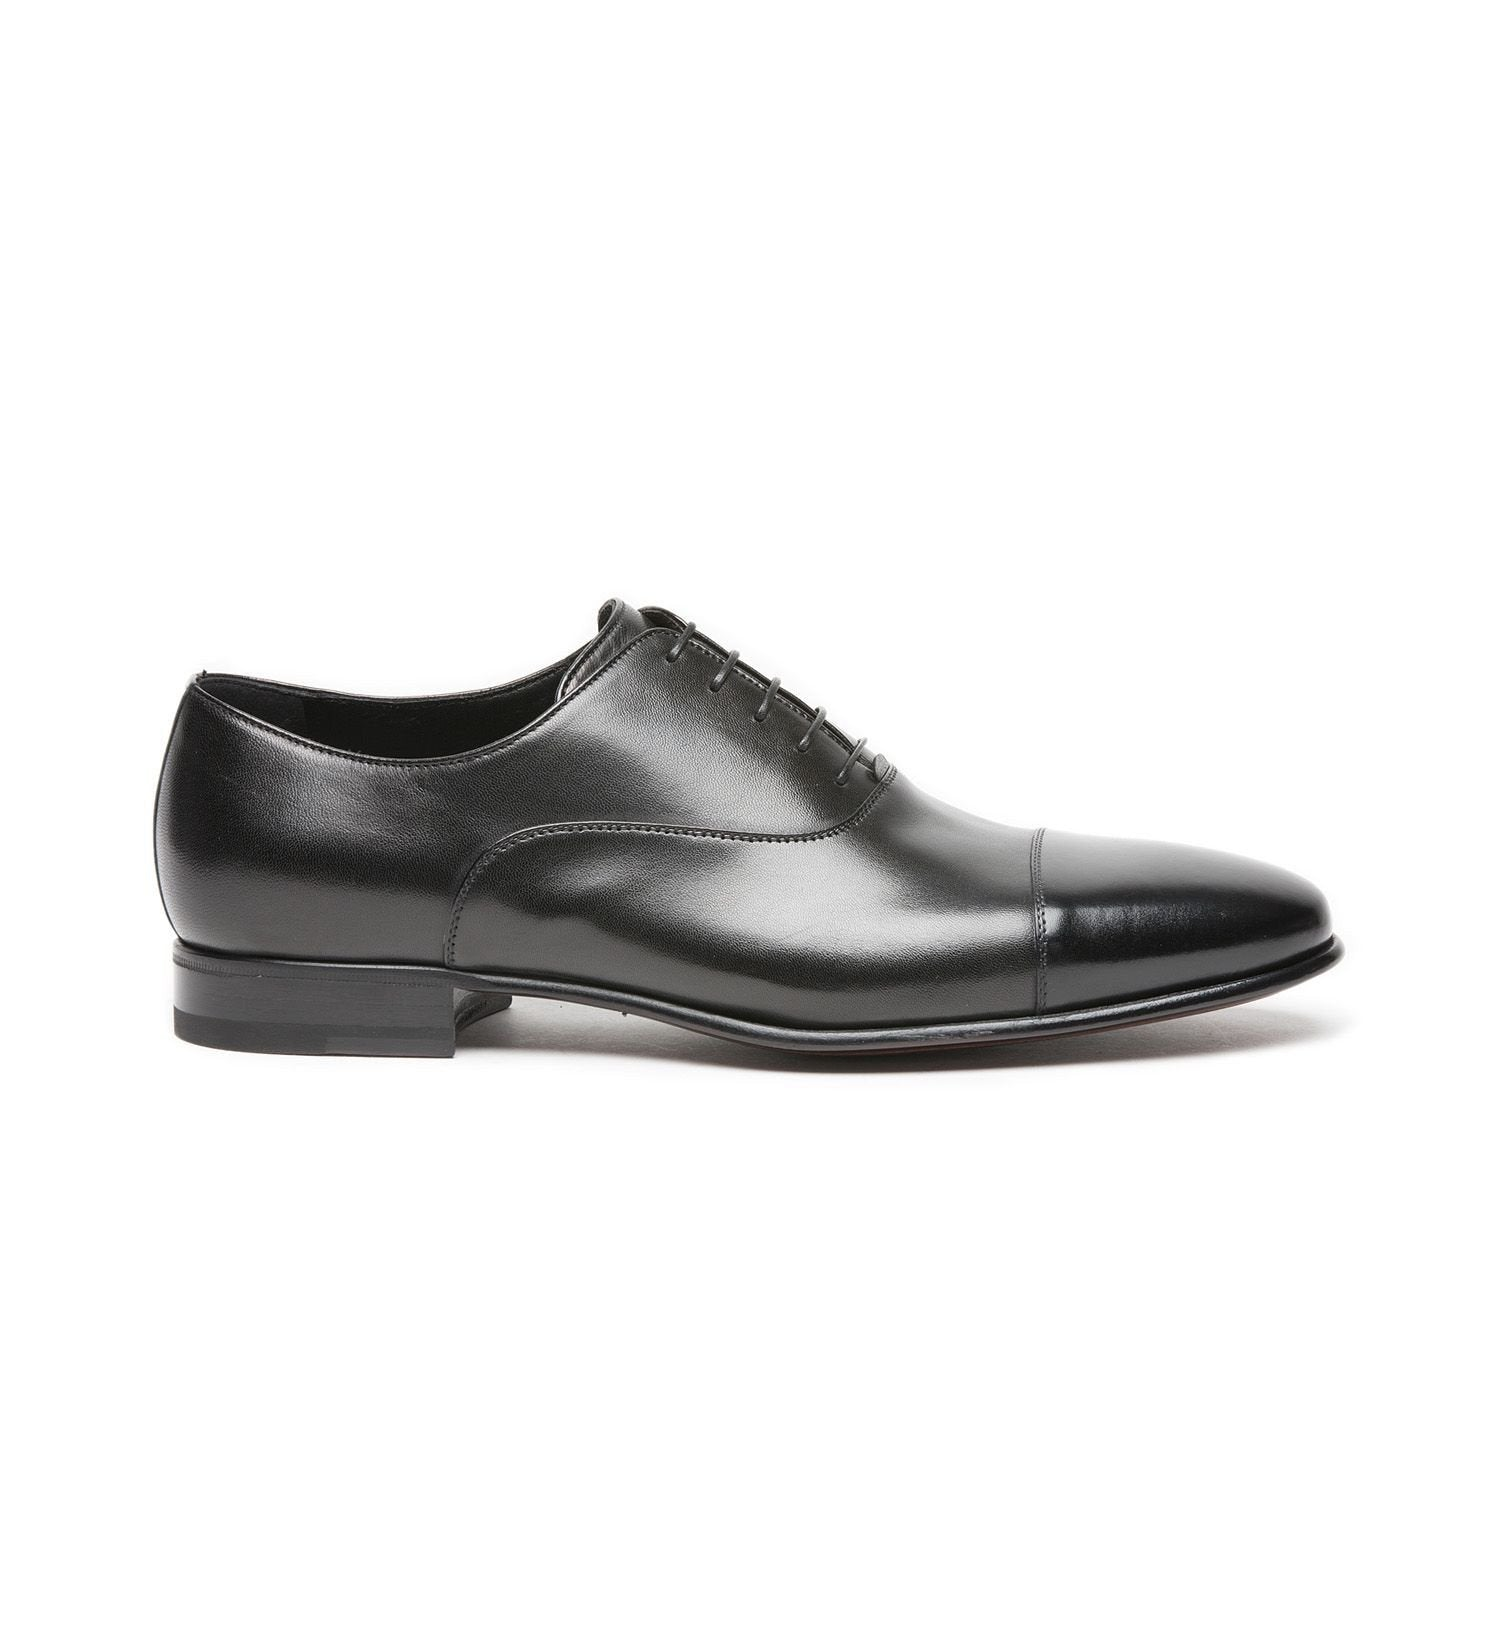 LACE-UP CAP-TOE,SHOES,A.TESTONI, | GentRow.com